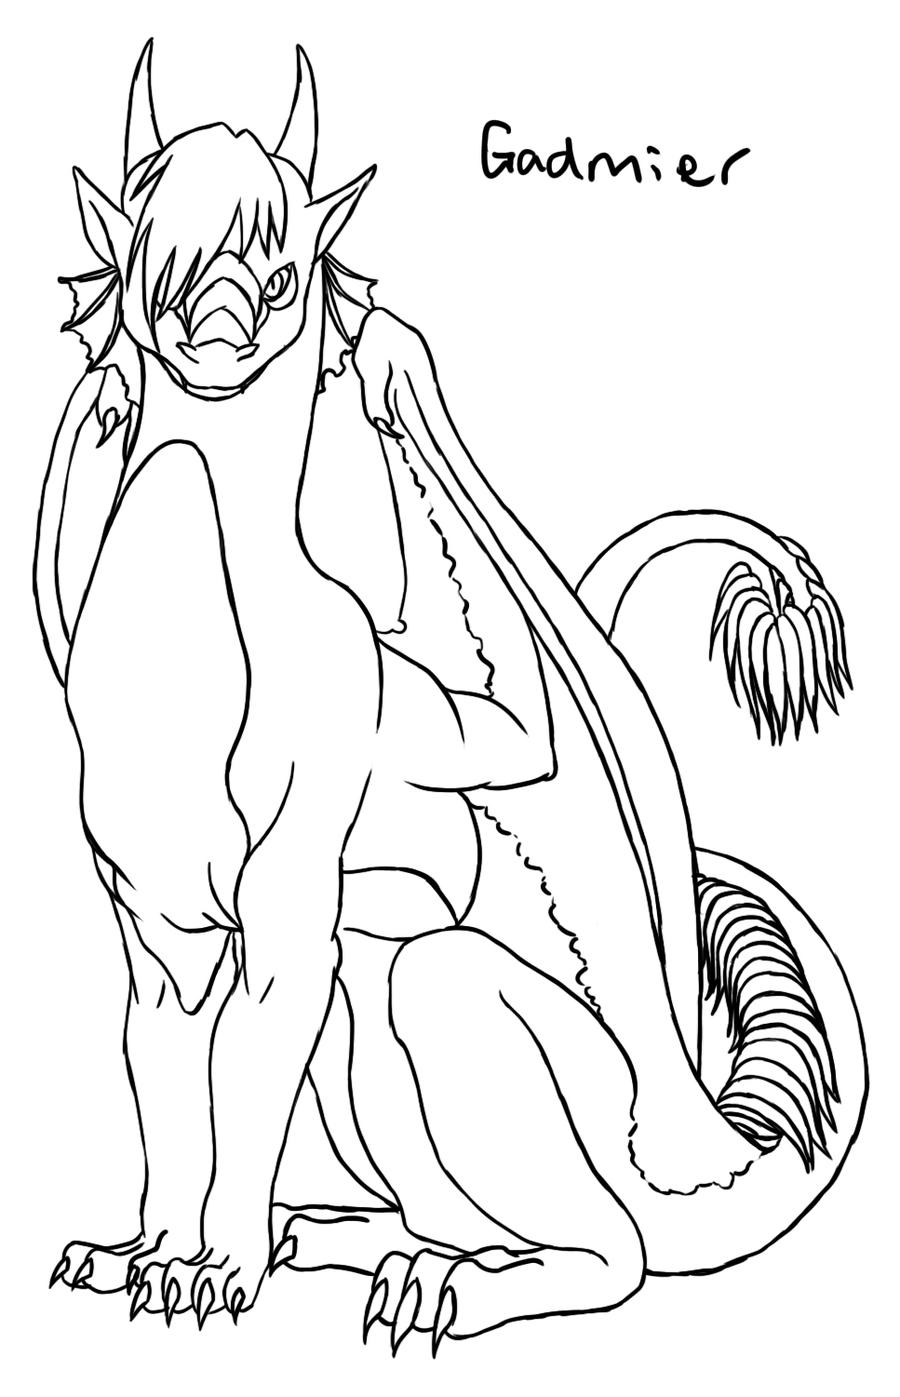 Dragon Lineart : Gadmier dragon lineart by aironshiroi on deviantart